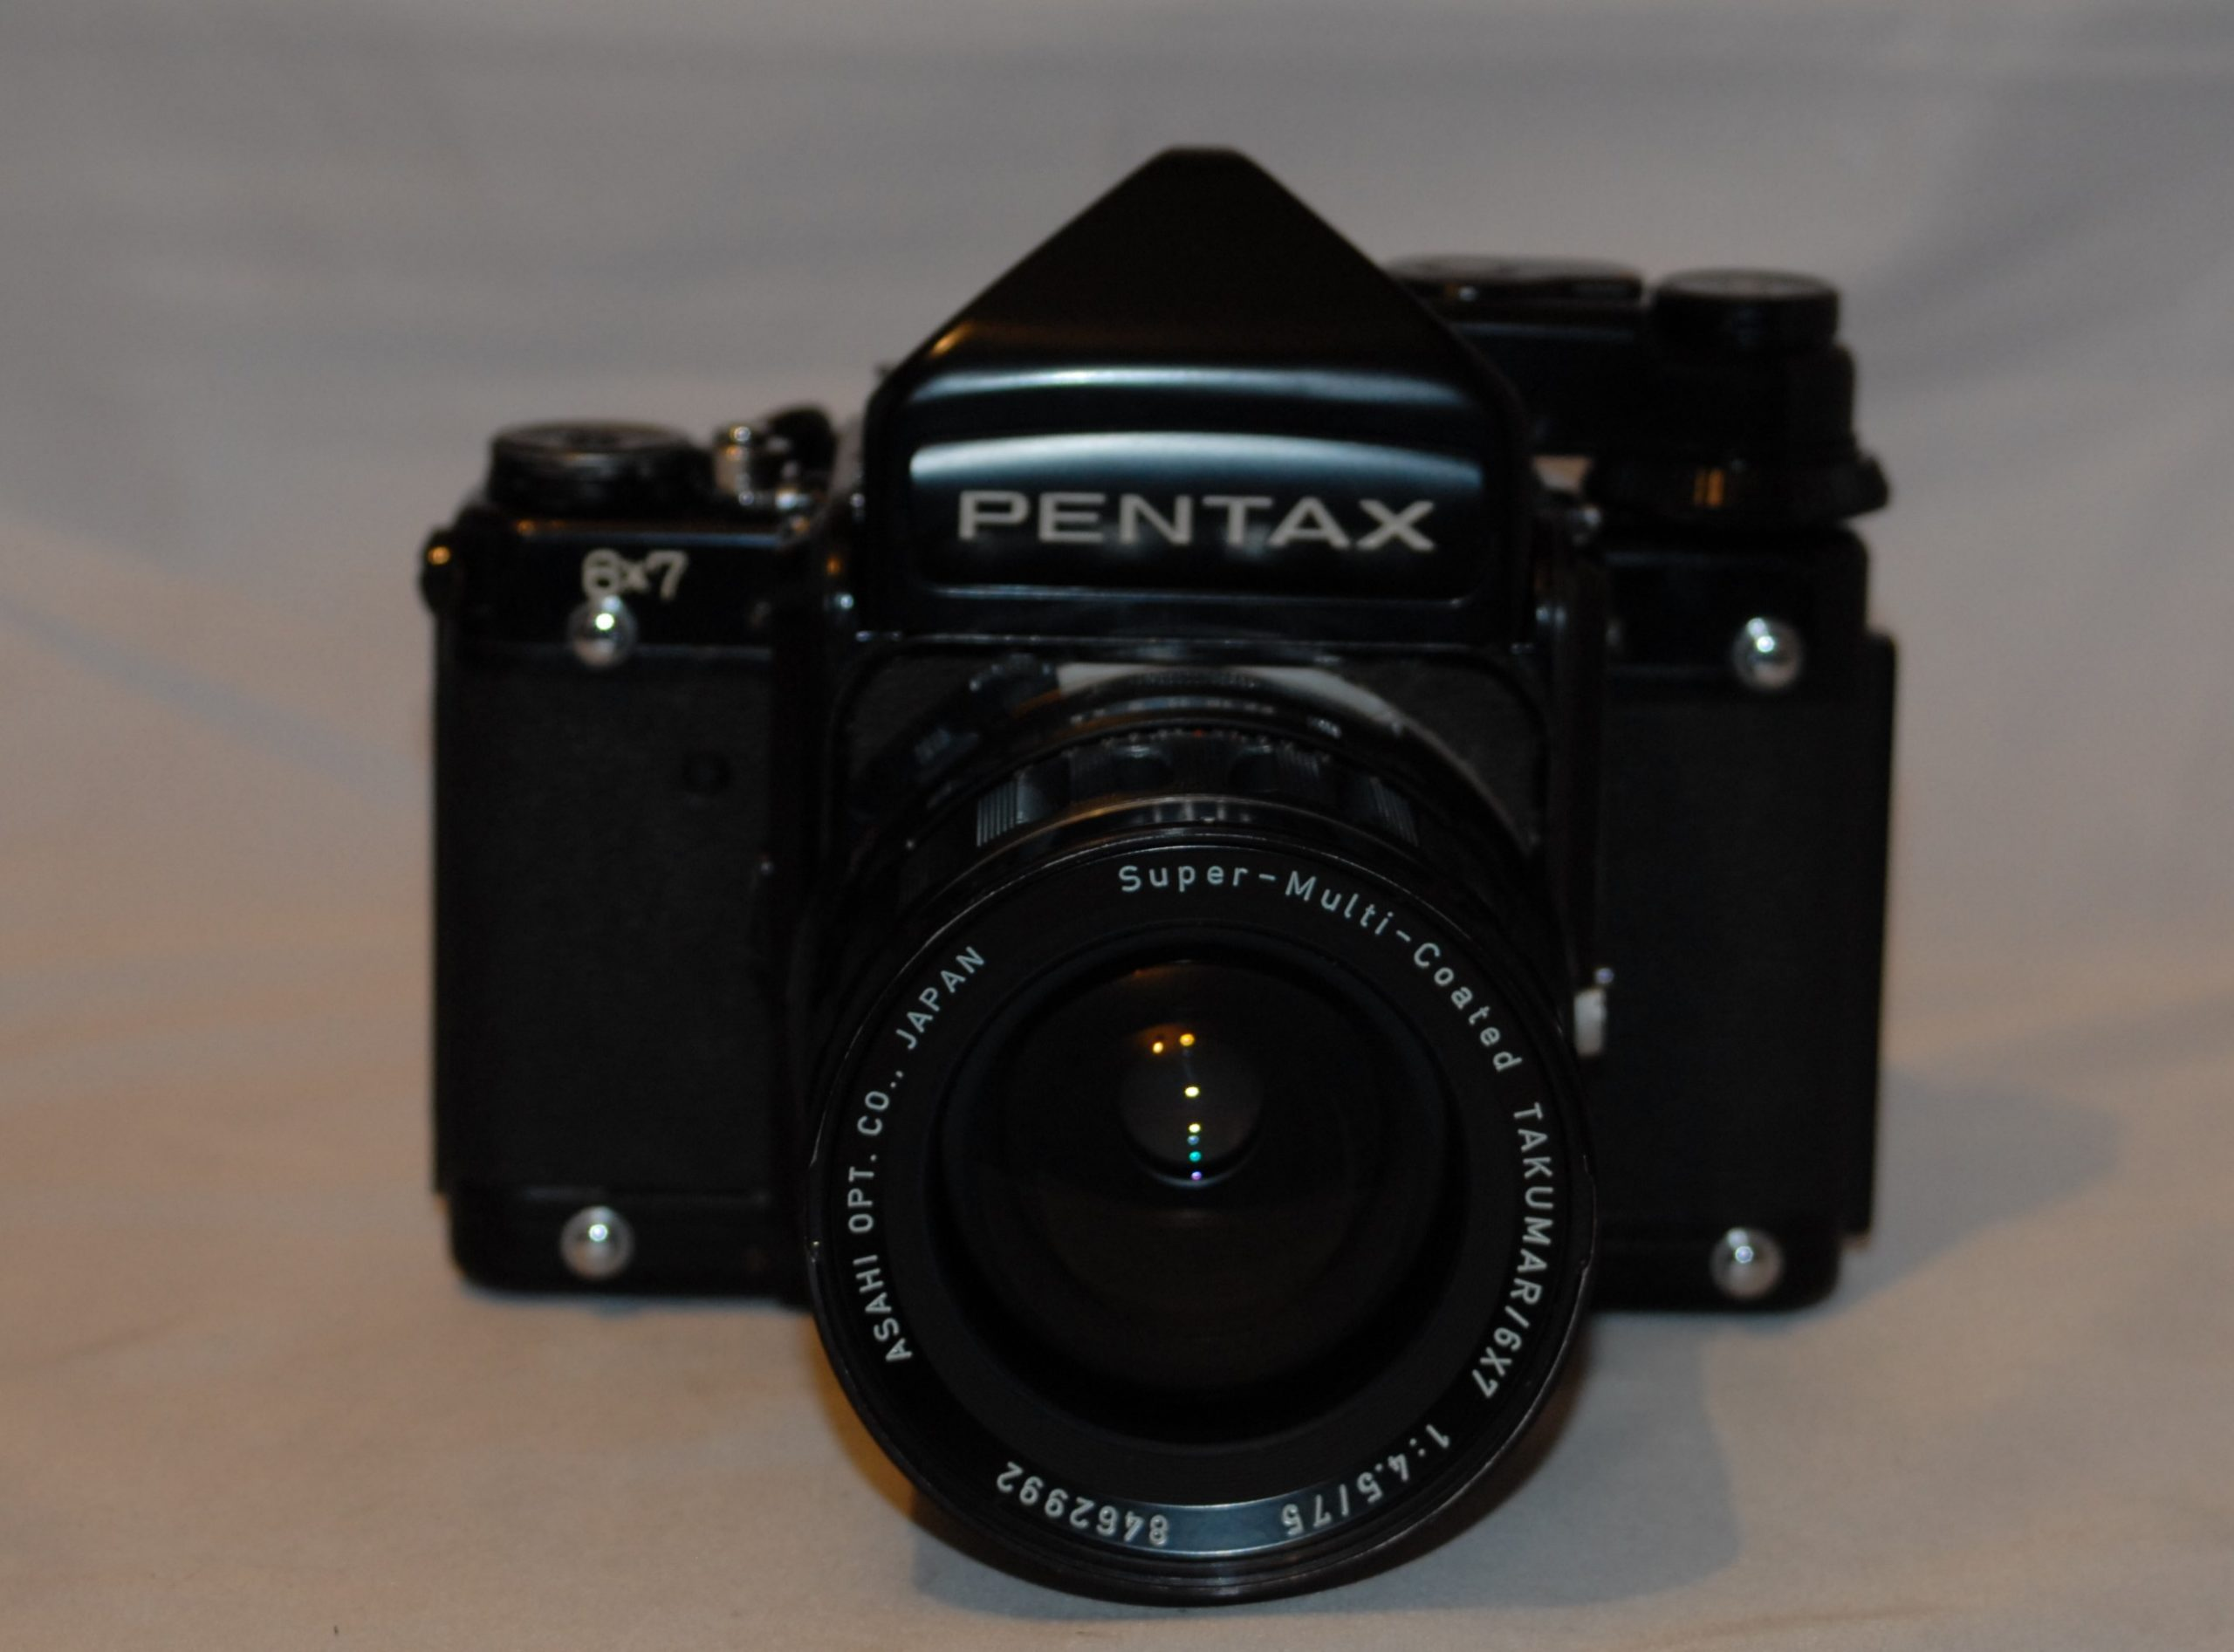 Pentax 6x7 with 75mm f4.5 and a metre head